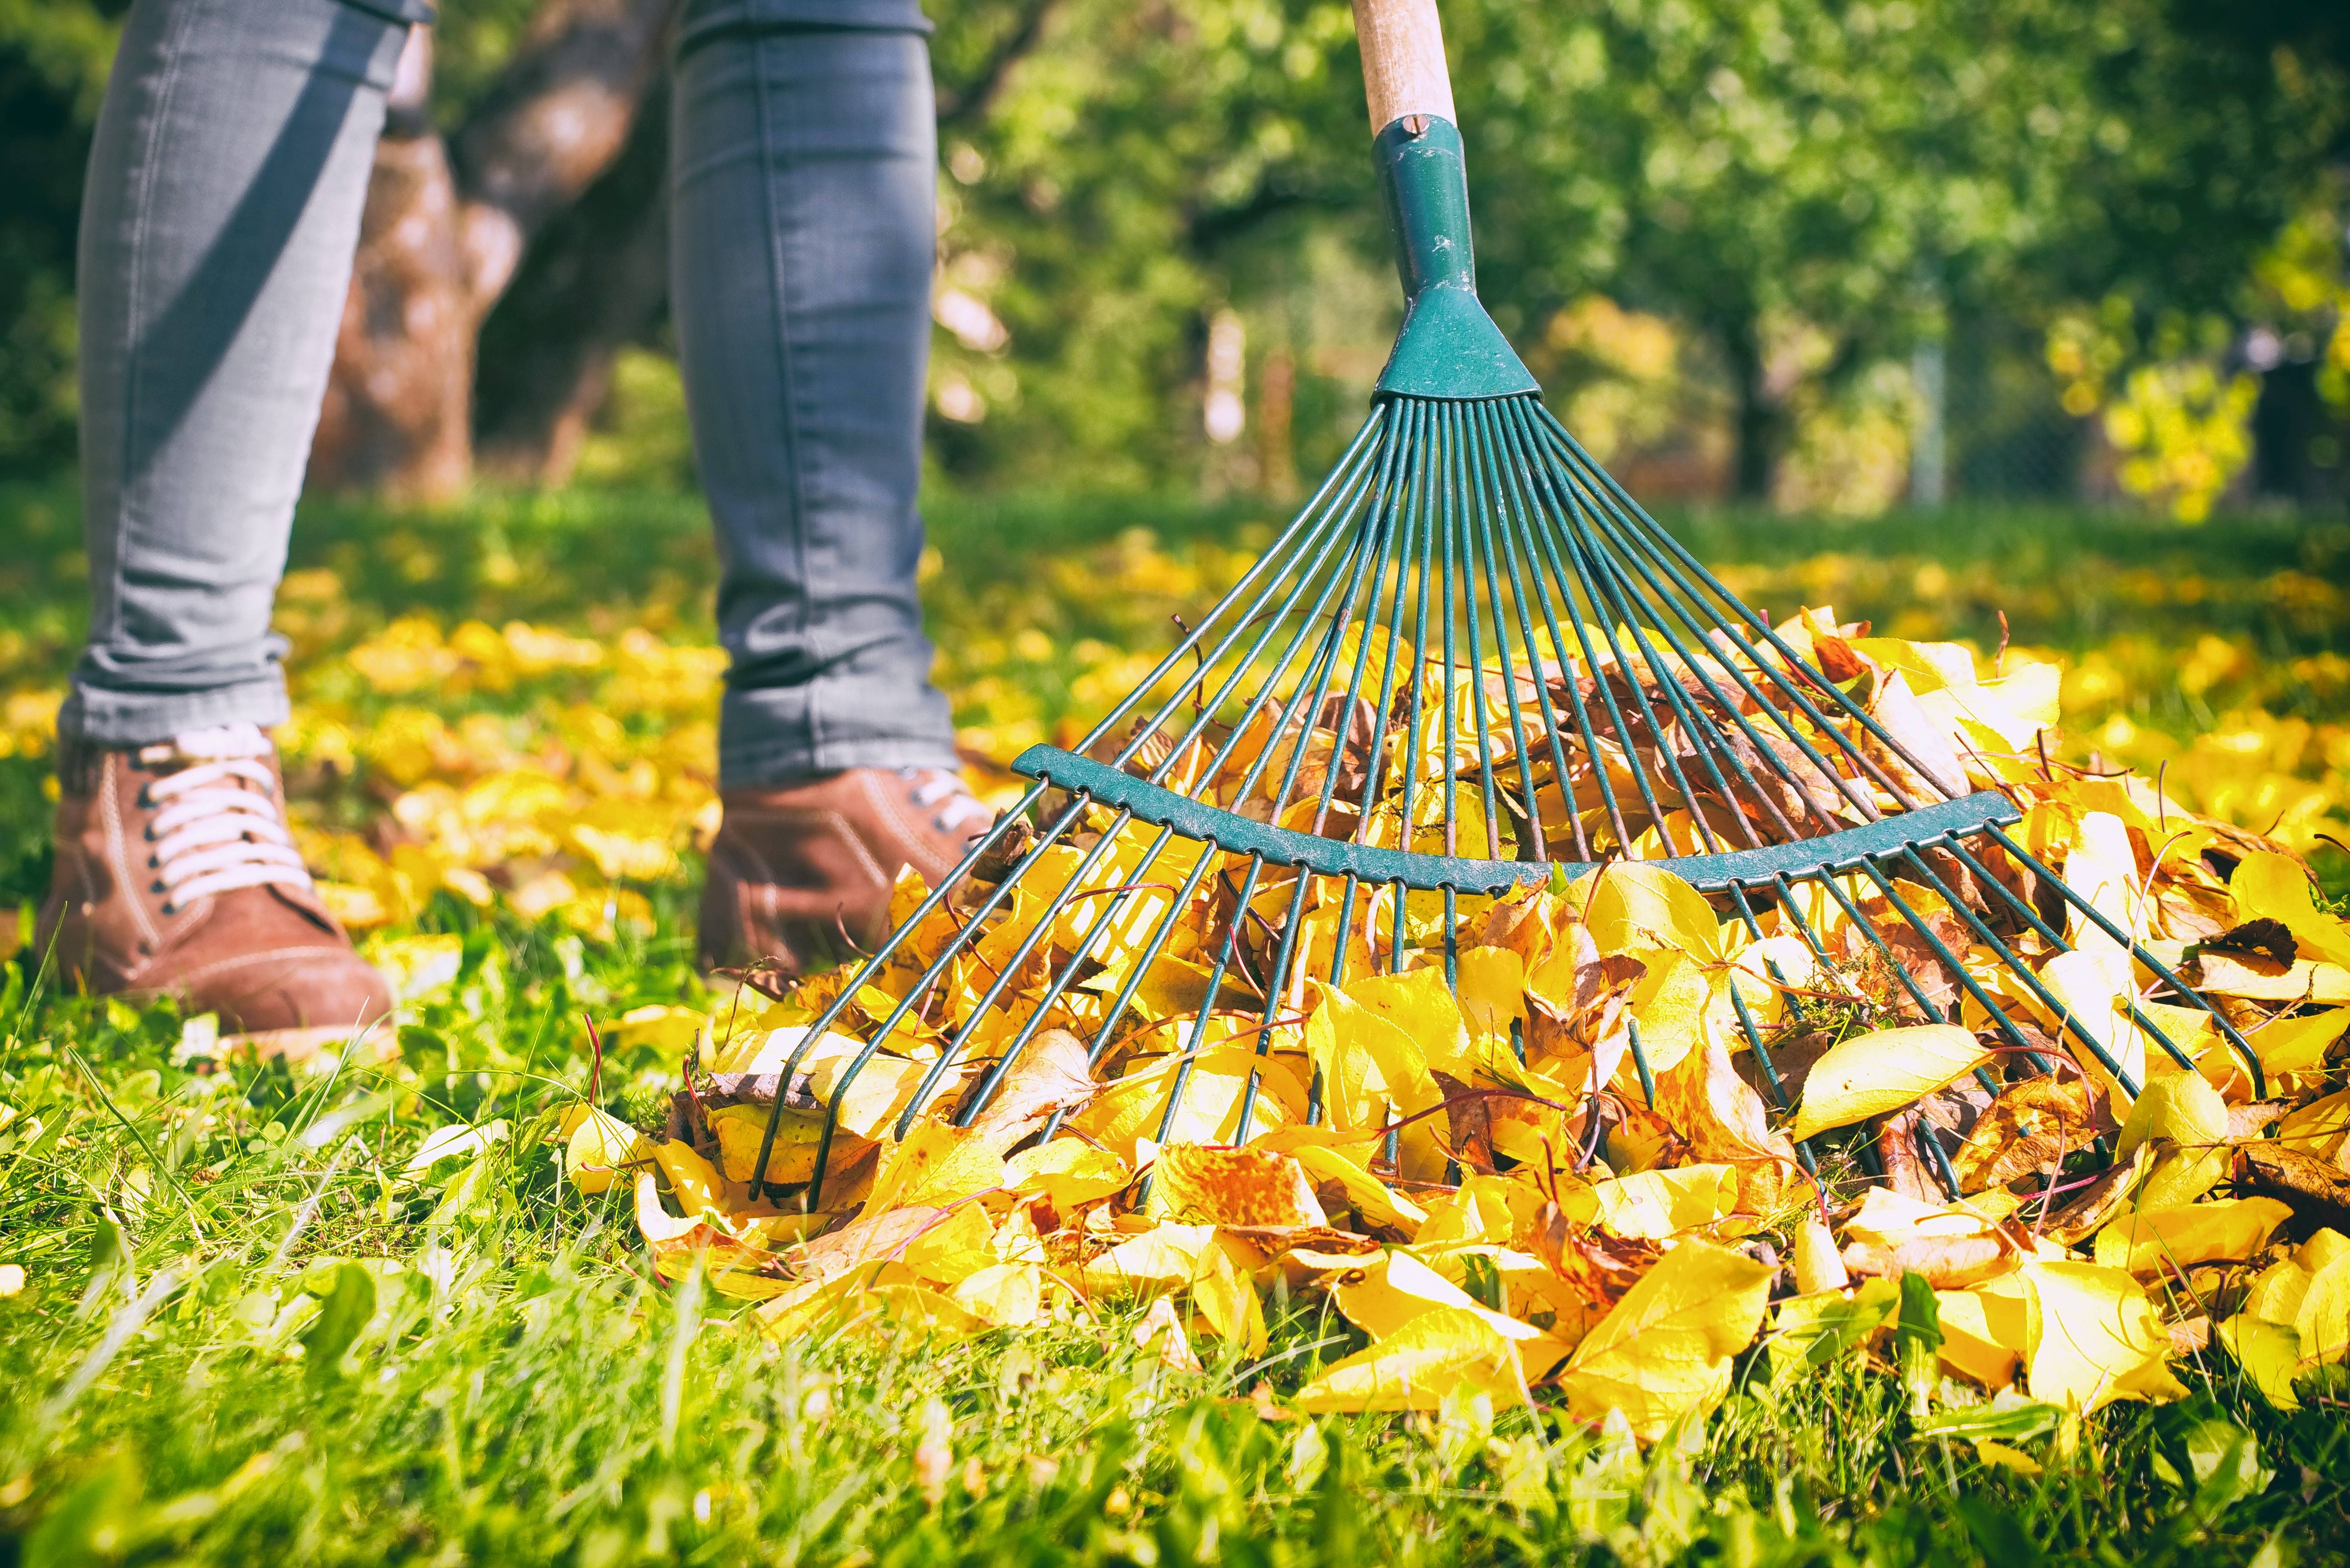 The Naperville City Council this week rejected a proposal from the public works department to scale back its leaf pickup obligations.